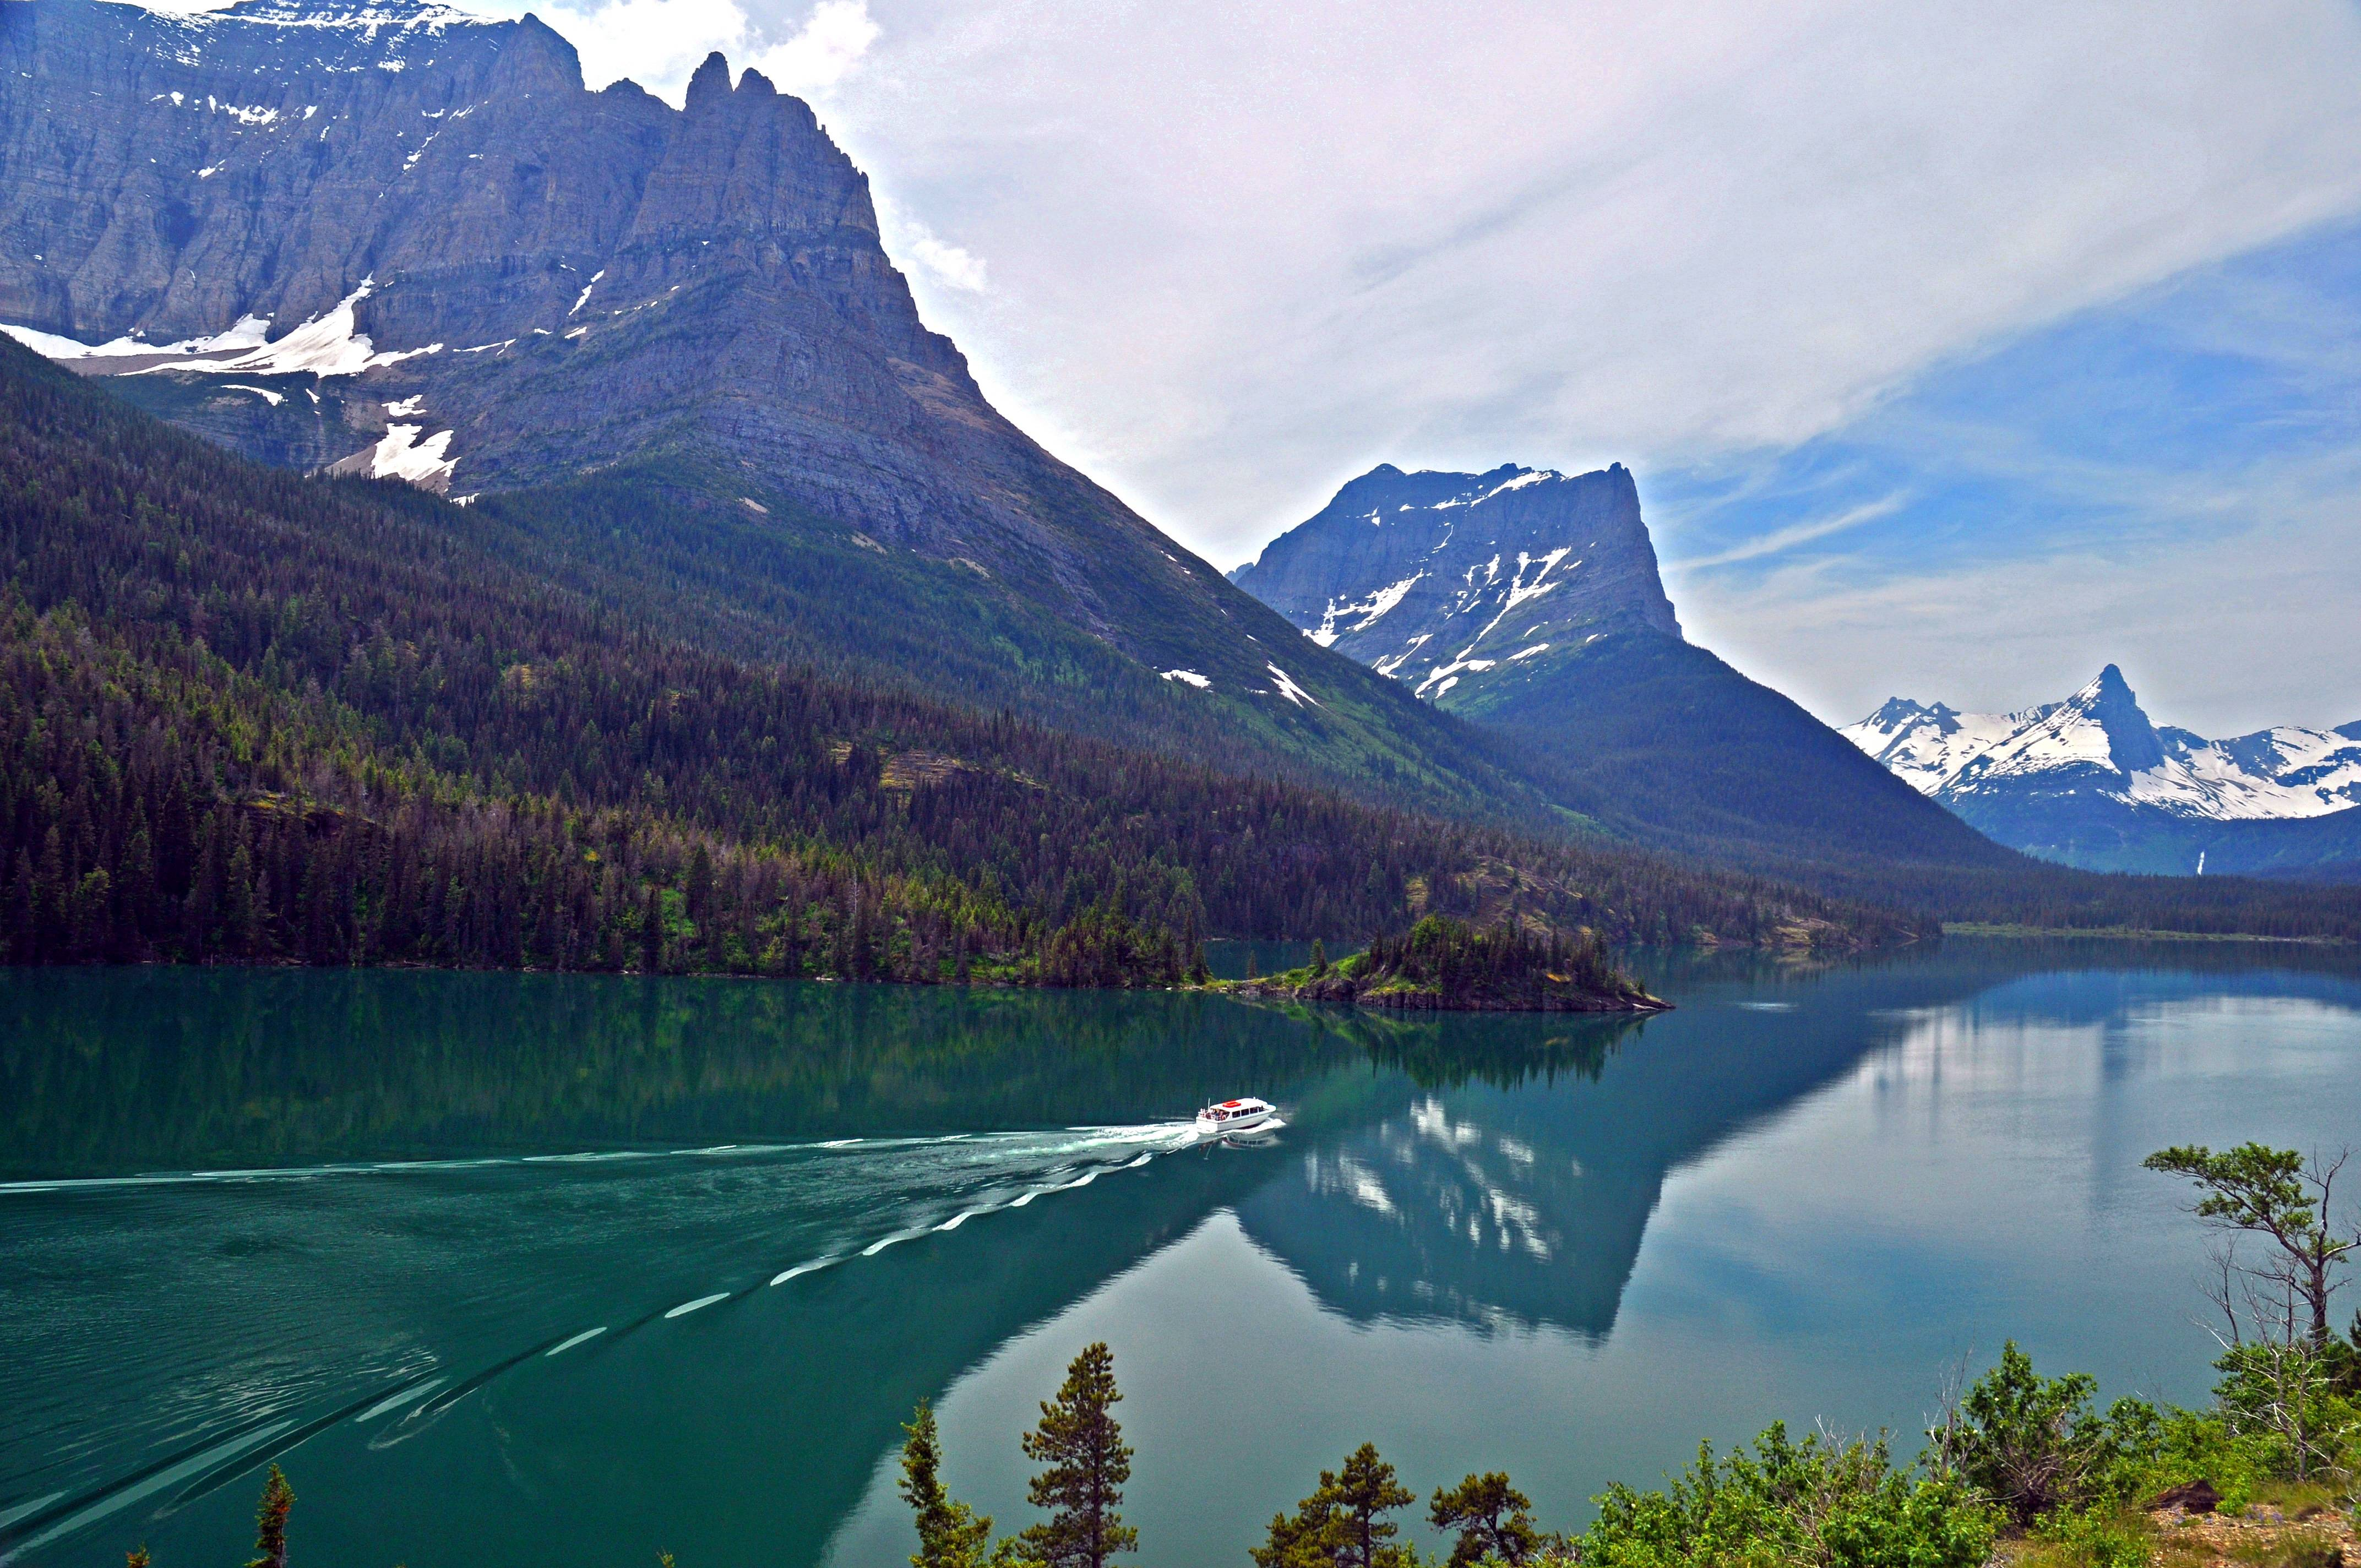 I took this photo during a summer trip to Glacier National Park in Montana, we watched a small tour boat cruise up beautiful St. Mary Lake toward the continental divide mountains as we continued on our hike to St. Mary Falls.